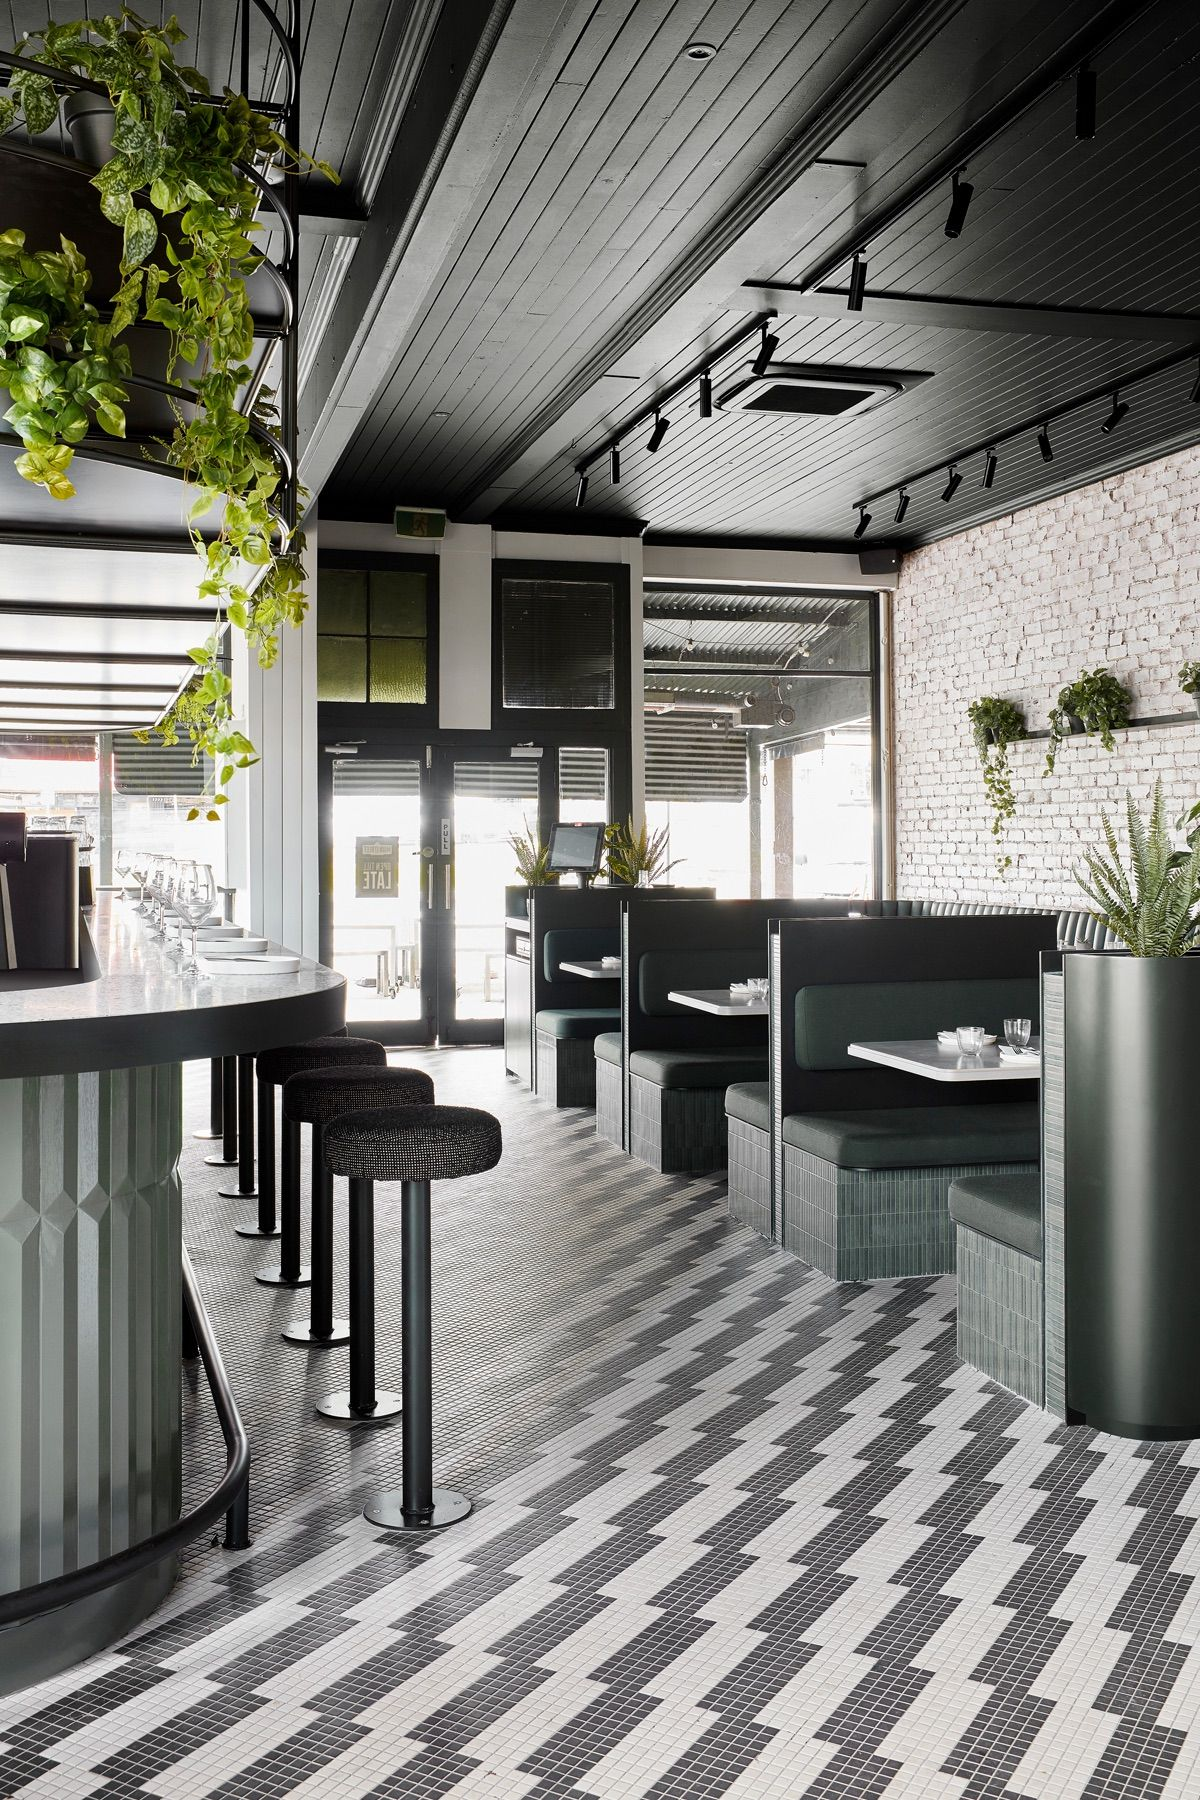 Biasol creates a modern take on classic New York diners